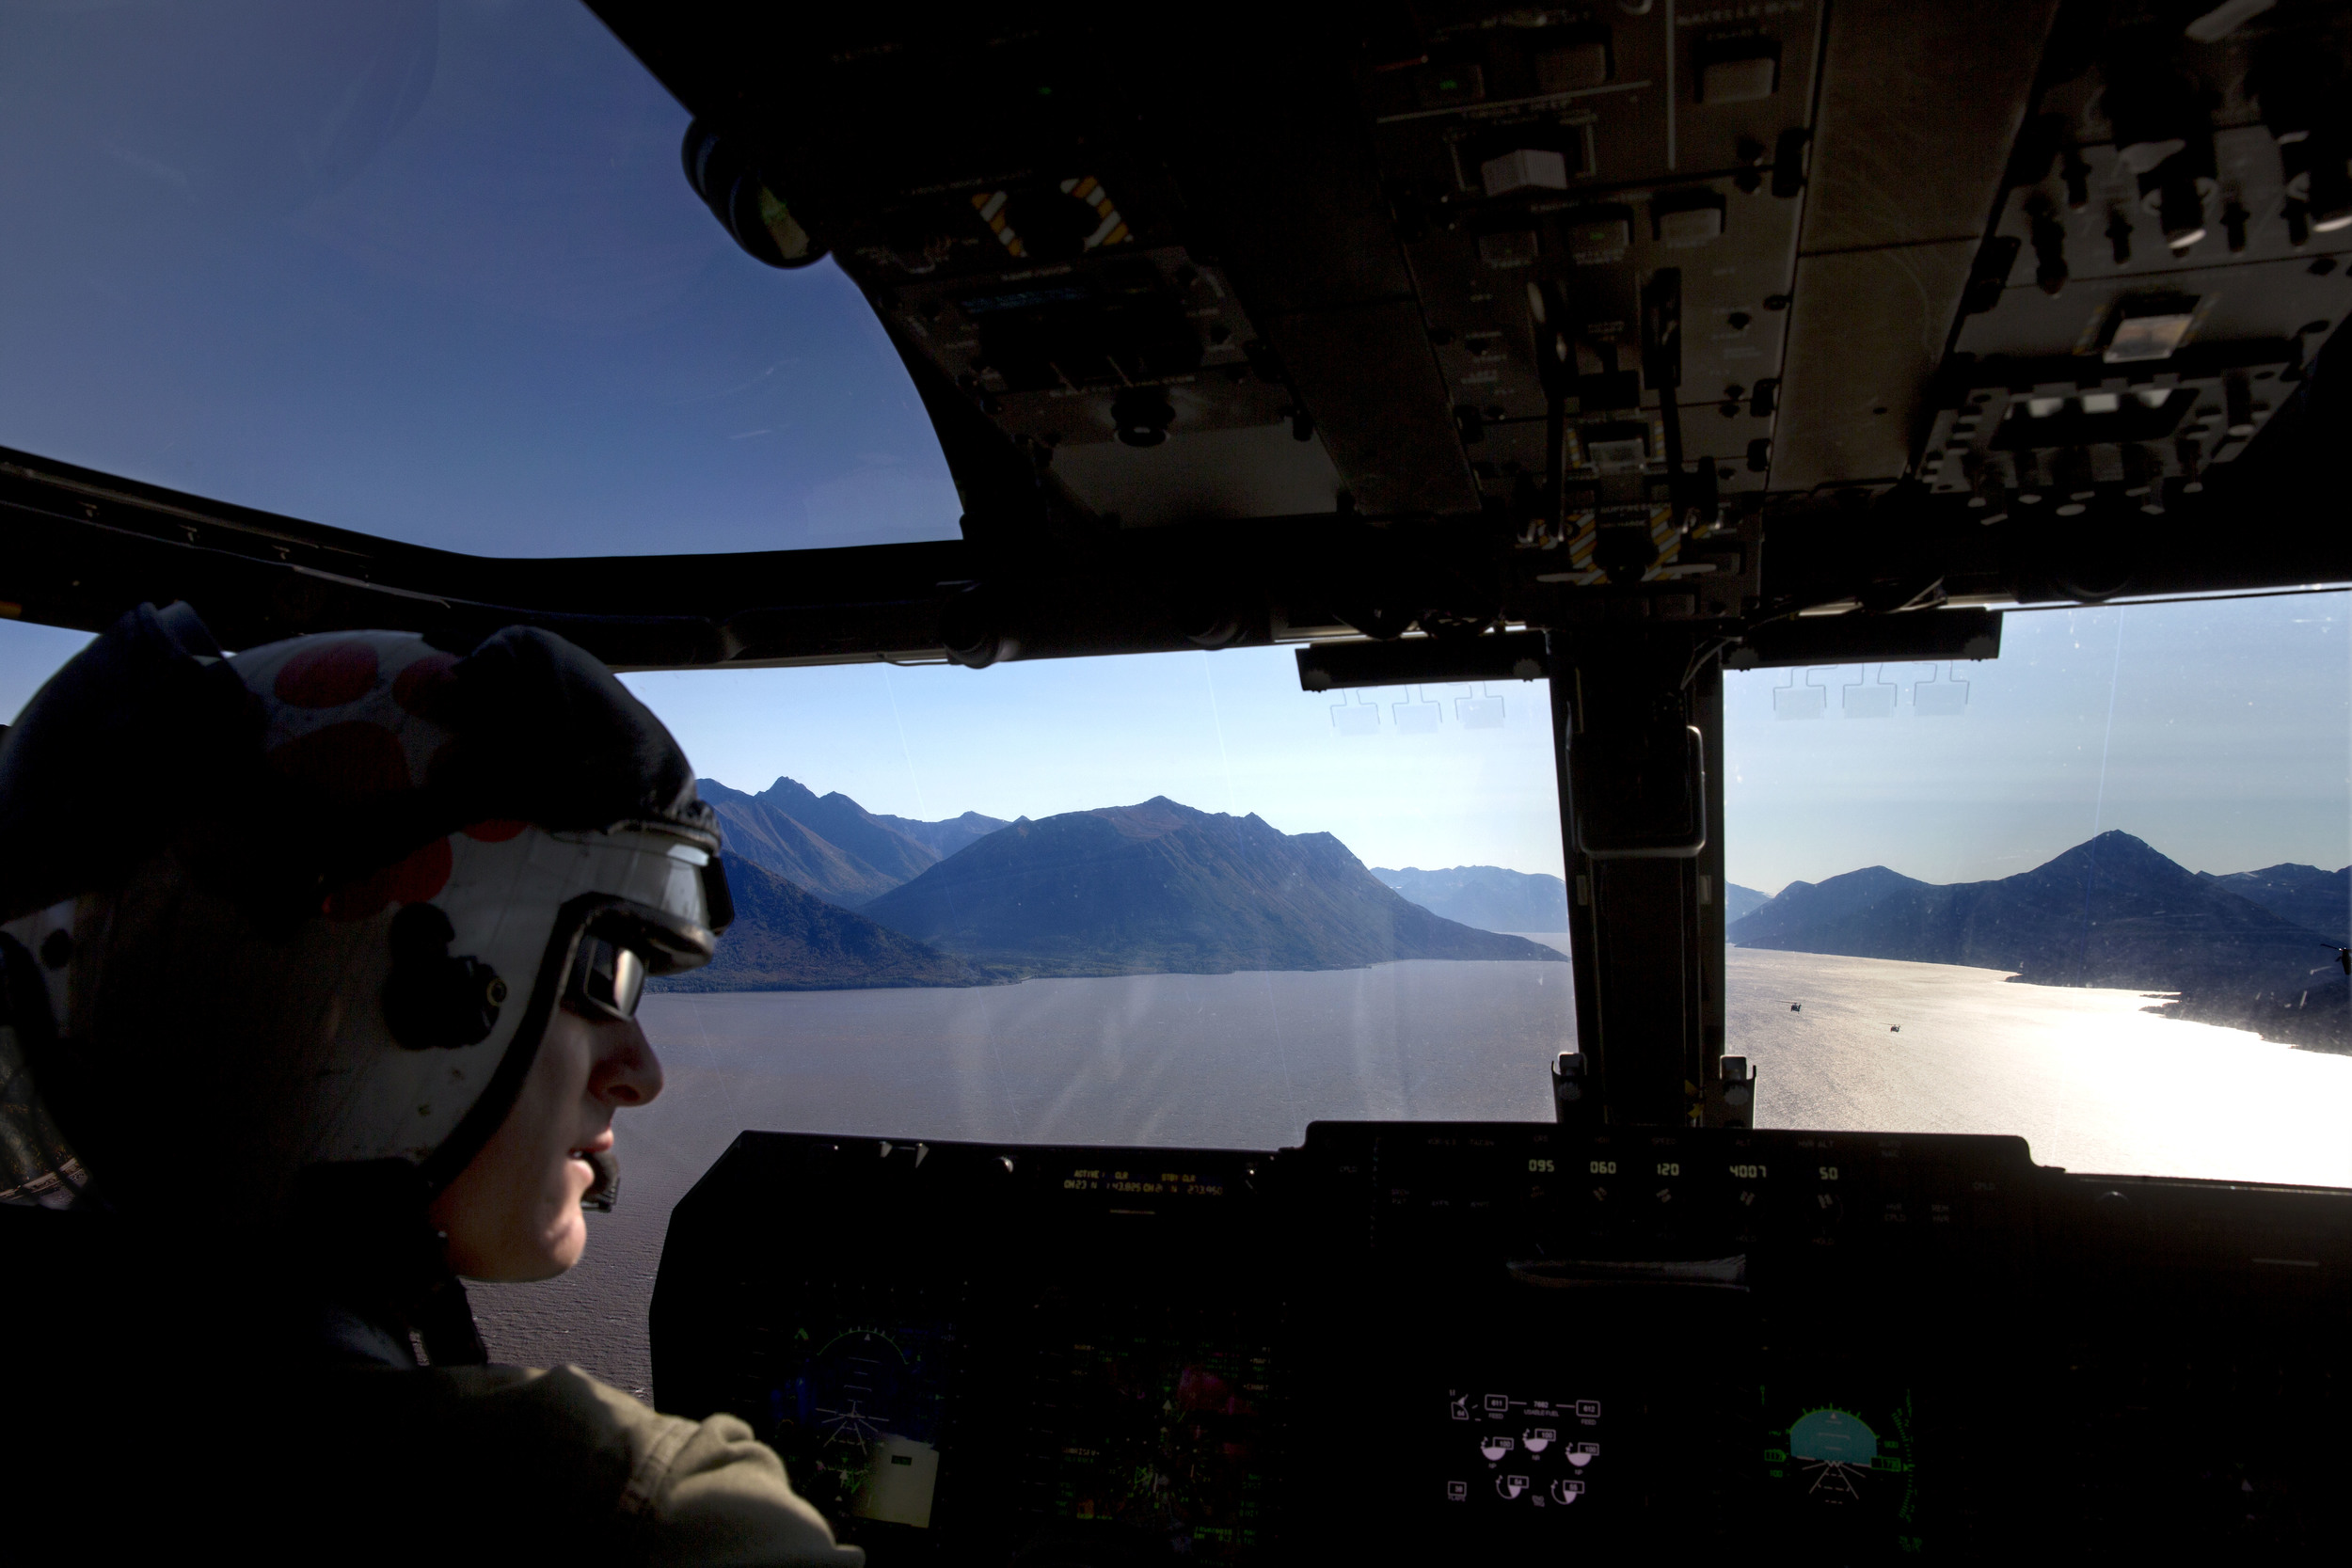 The view from the cockpit of Nighthawk 4 Osprey helicopter flying to Seward, Alaska. Marine One and Nighthawk 2 in the lead.